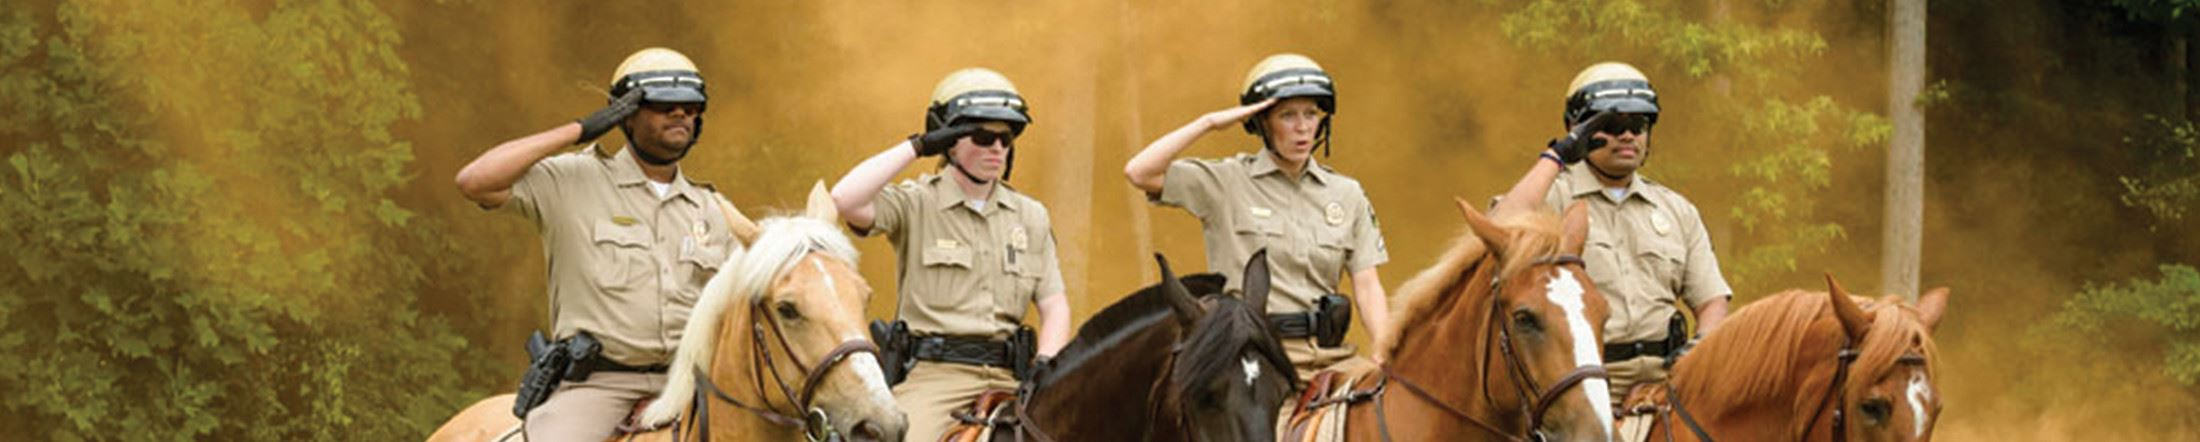 Men and Woman police saluting on horseback